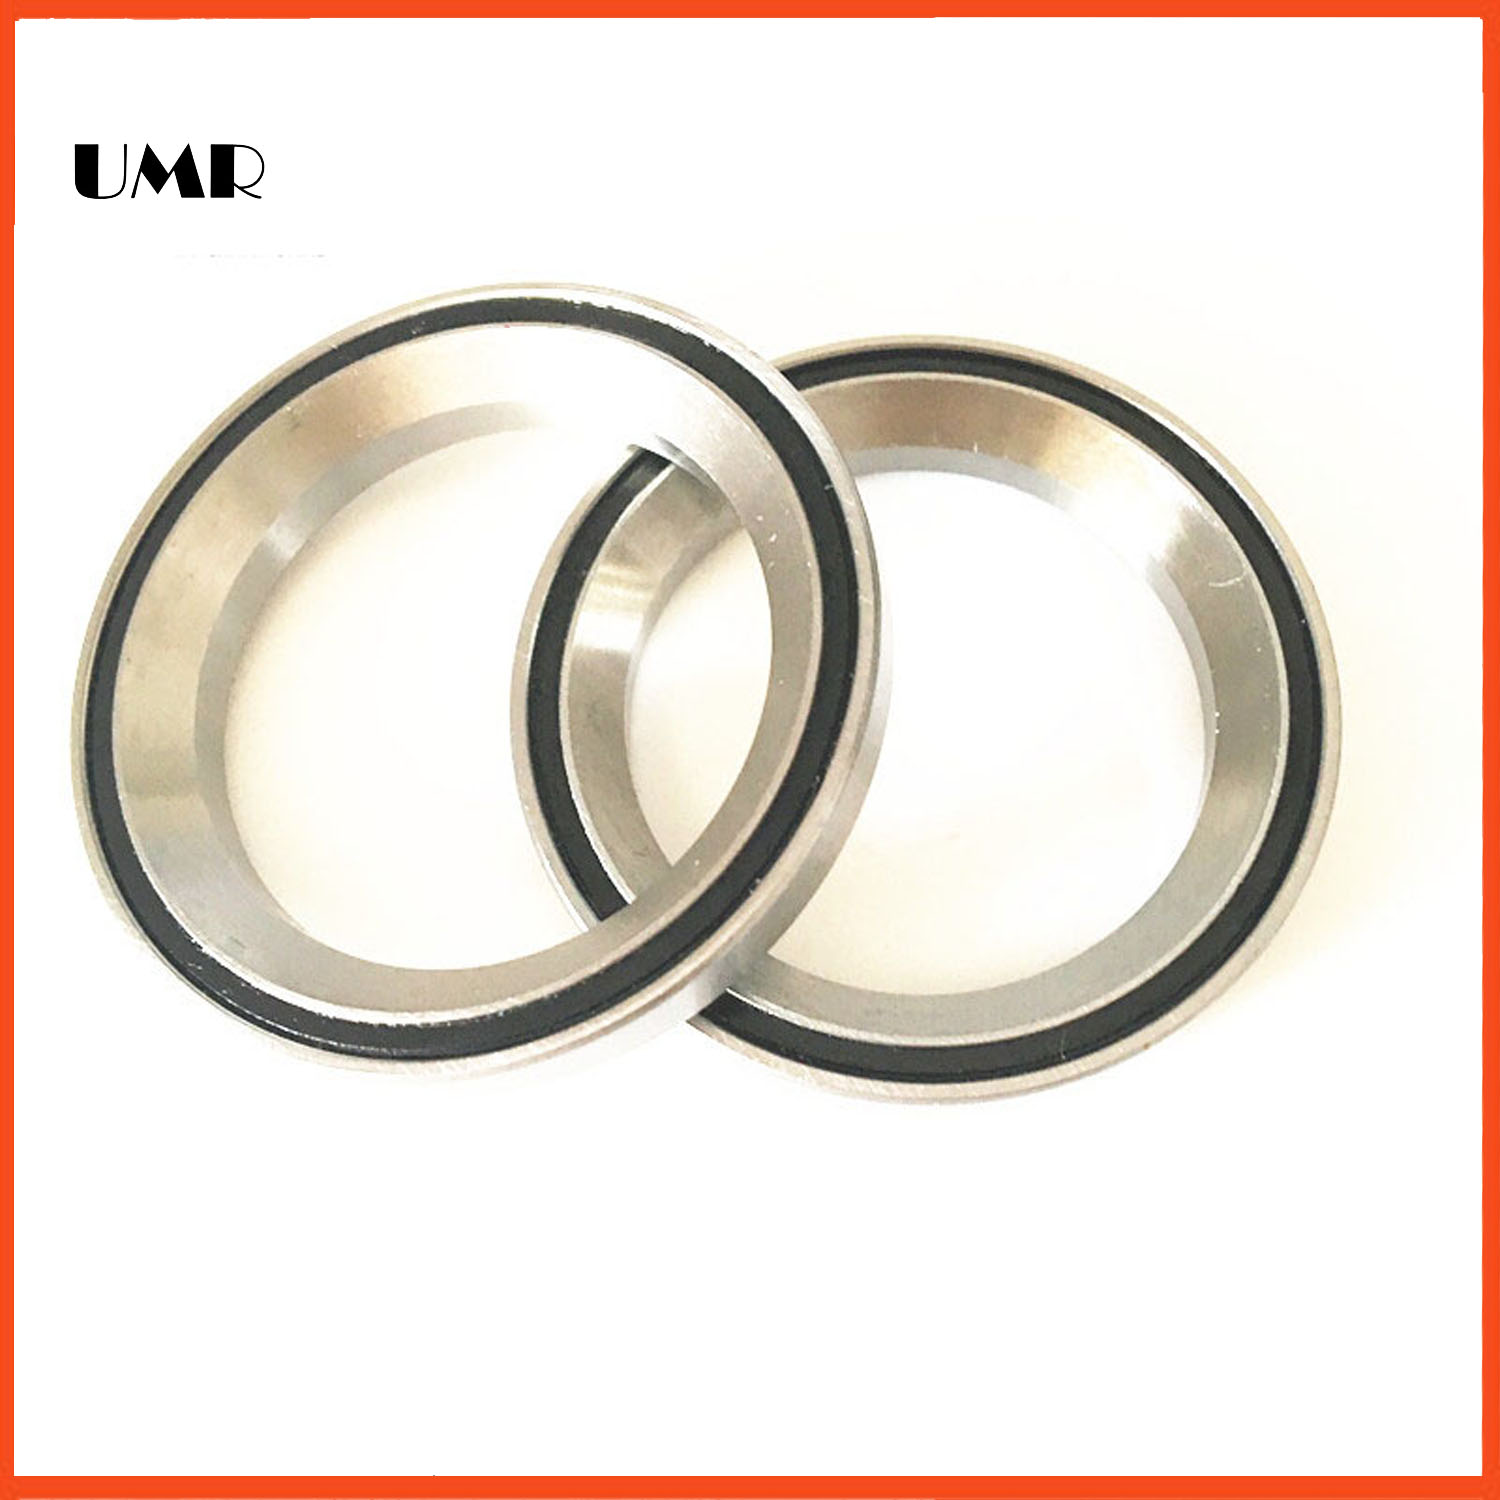 Bicycle headset bearing MH-P03 MH-P03K MH-P08 MH-P08H7  MH-P08H8 MH-P08F MH-P04  MH-P09K MH-P16 MH-P16H8 MH-P21 MH-P22  UMR marbo mh a102